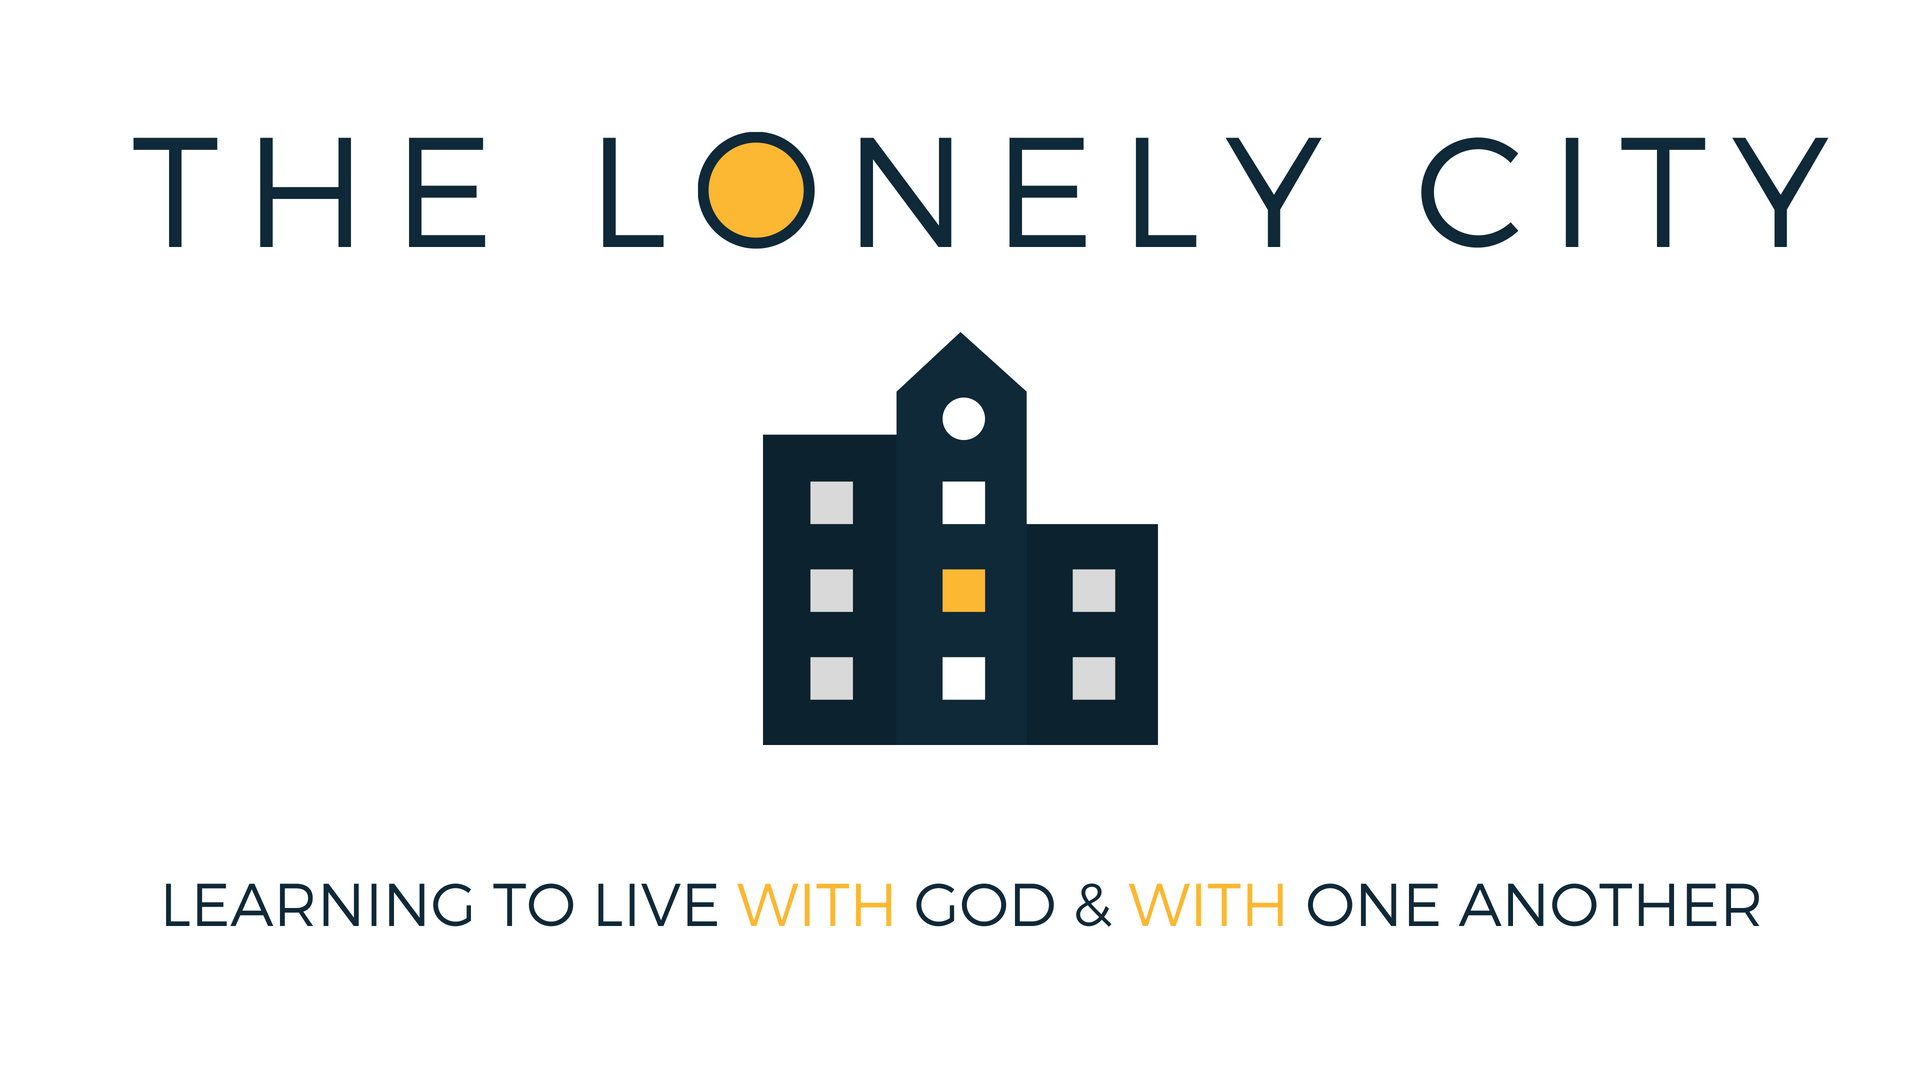 THE LONELY CITY - The epidemic of loneliness is being experienced all across the globe, in almost every place where people are. However, there is a particular sting to being lonely in the middle of a city like New York. In this series we explore this issue of loneliness and how Jesus ministers to us in that painful place.